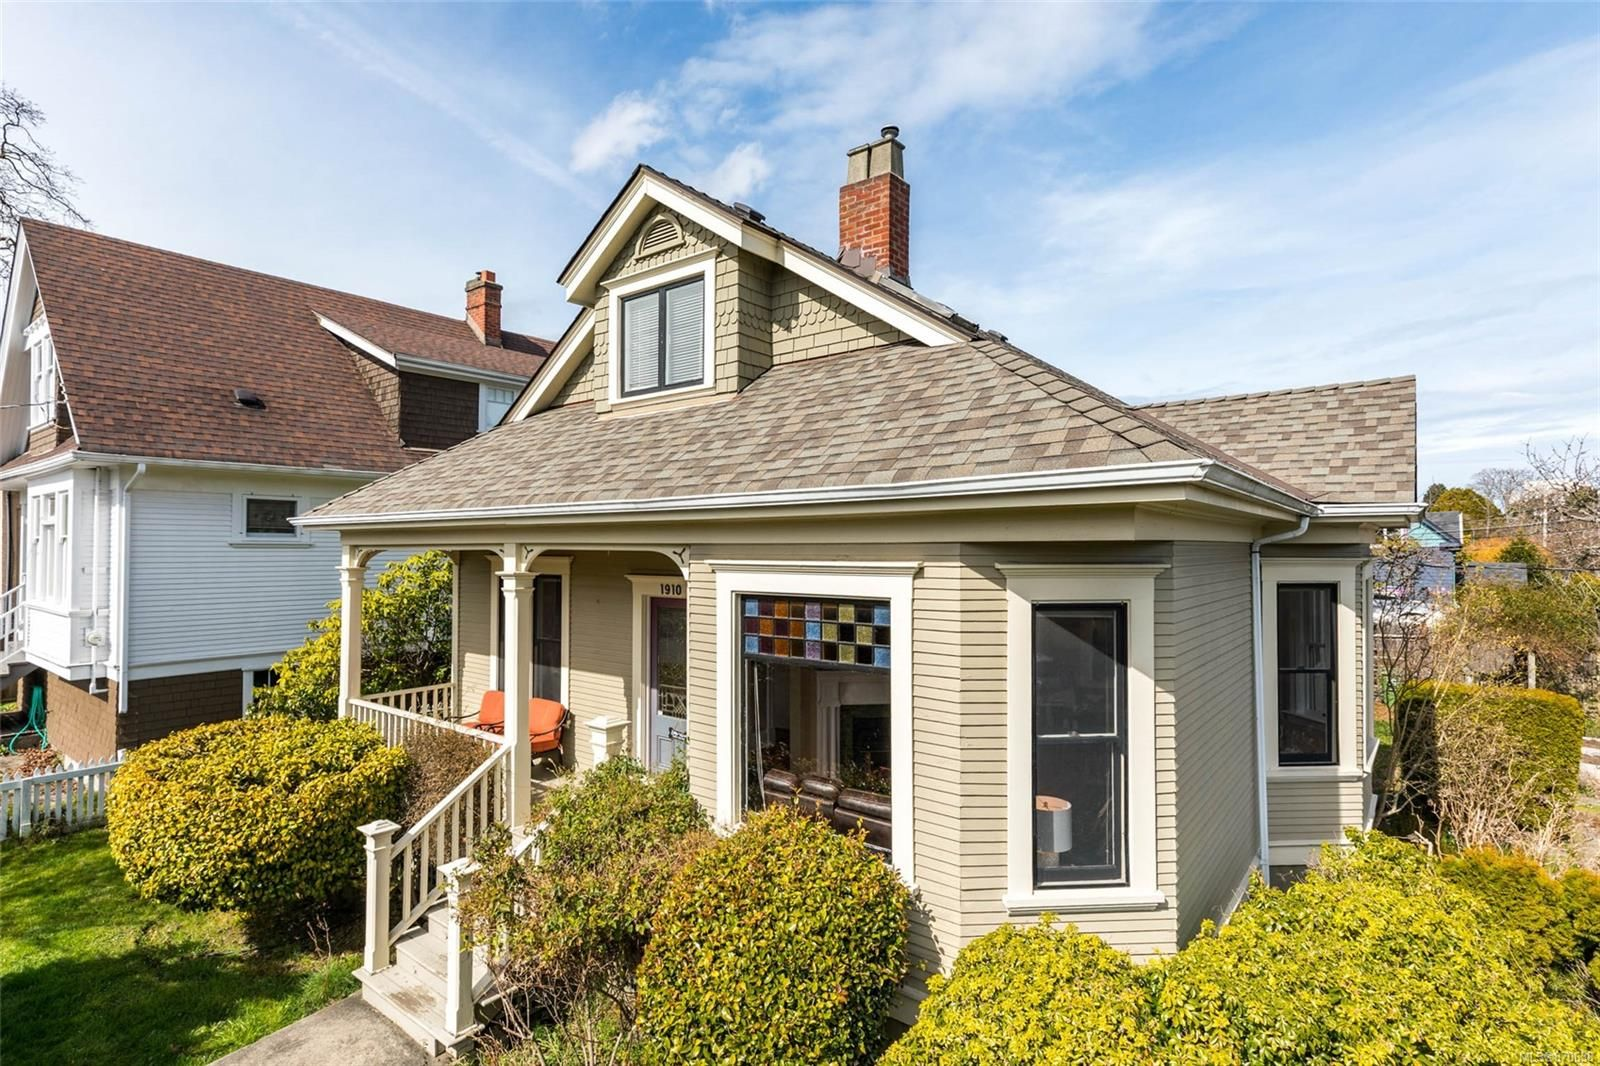 Main Photo: 1910 Leighton Rd in : Vi Jubilee House for sale (Victoria)  : MLS®# 870638